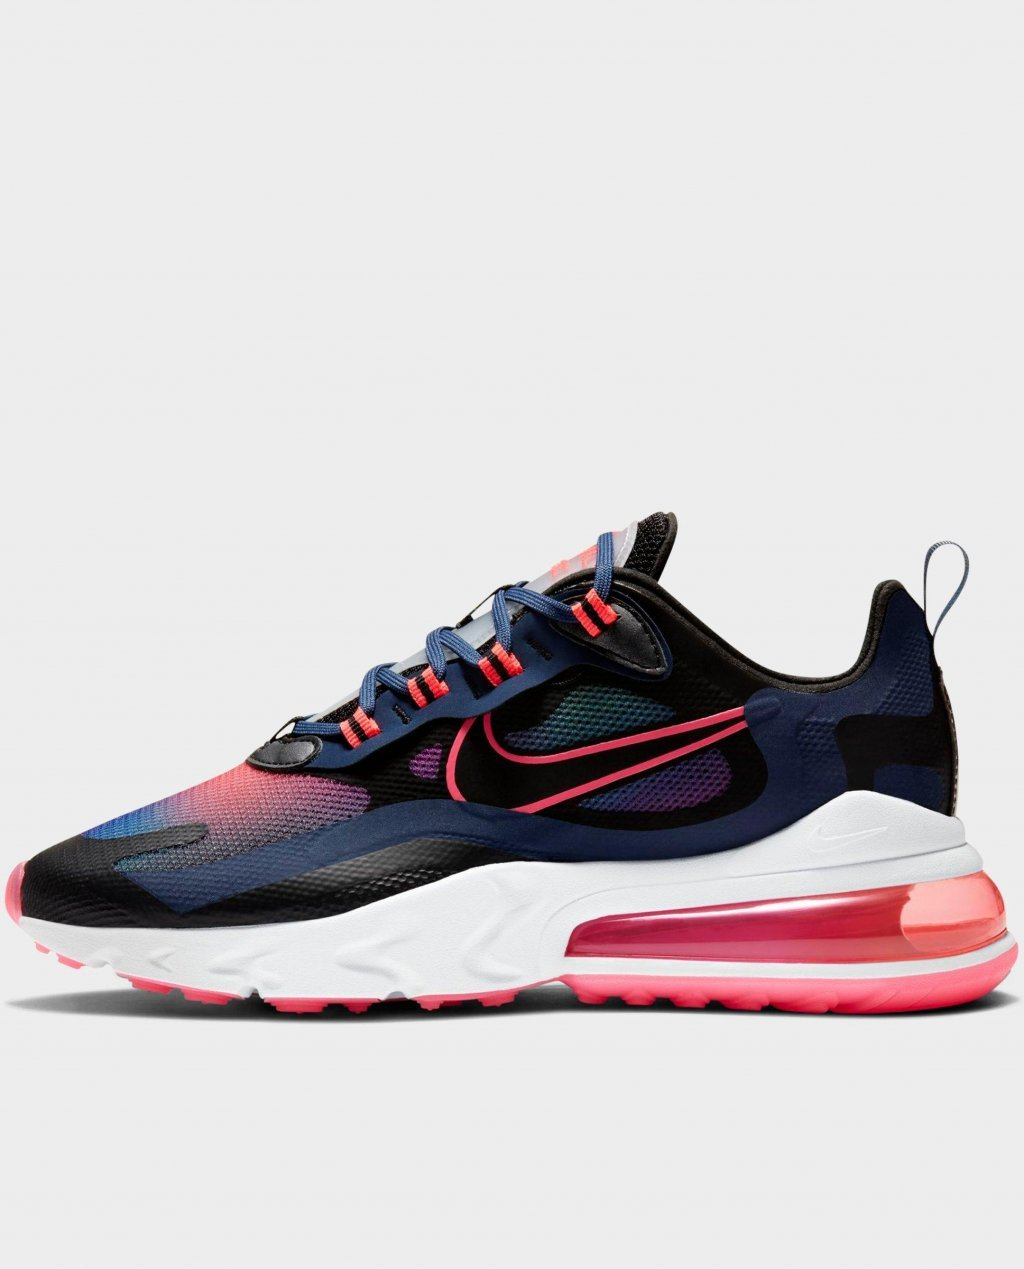 Avenida sutil Saga  Women's Nike Air Max 270 React SE Sensory Air Casual Shoes Online Fashion  Store